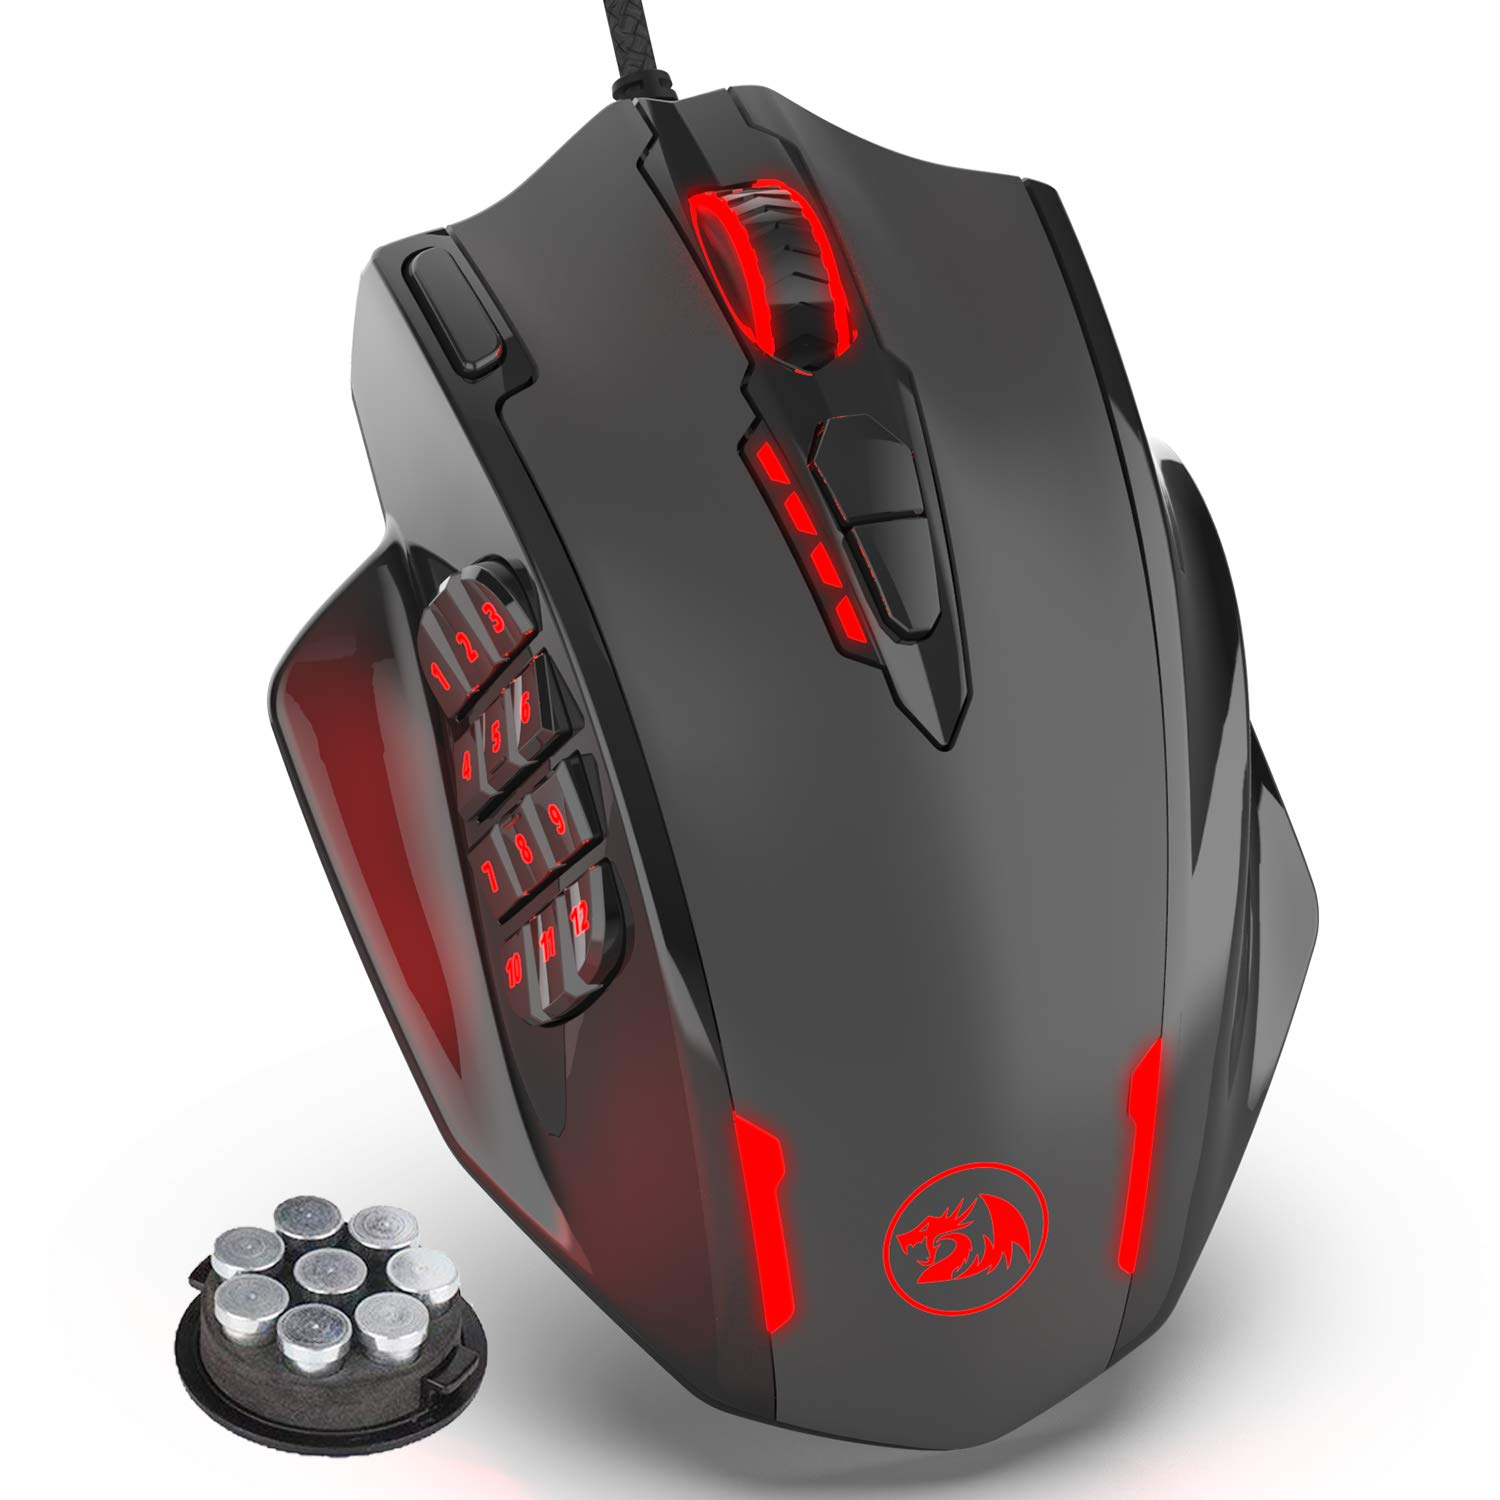 Redragon Impact RGB LED MMO Mouse with Side Buttons Laser Wired Gaming Mouse with 12,400DPI, High Precision, 19 Programmable Mouse Buttons by Redragon (Image #9)